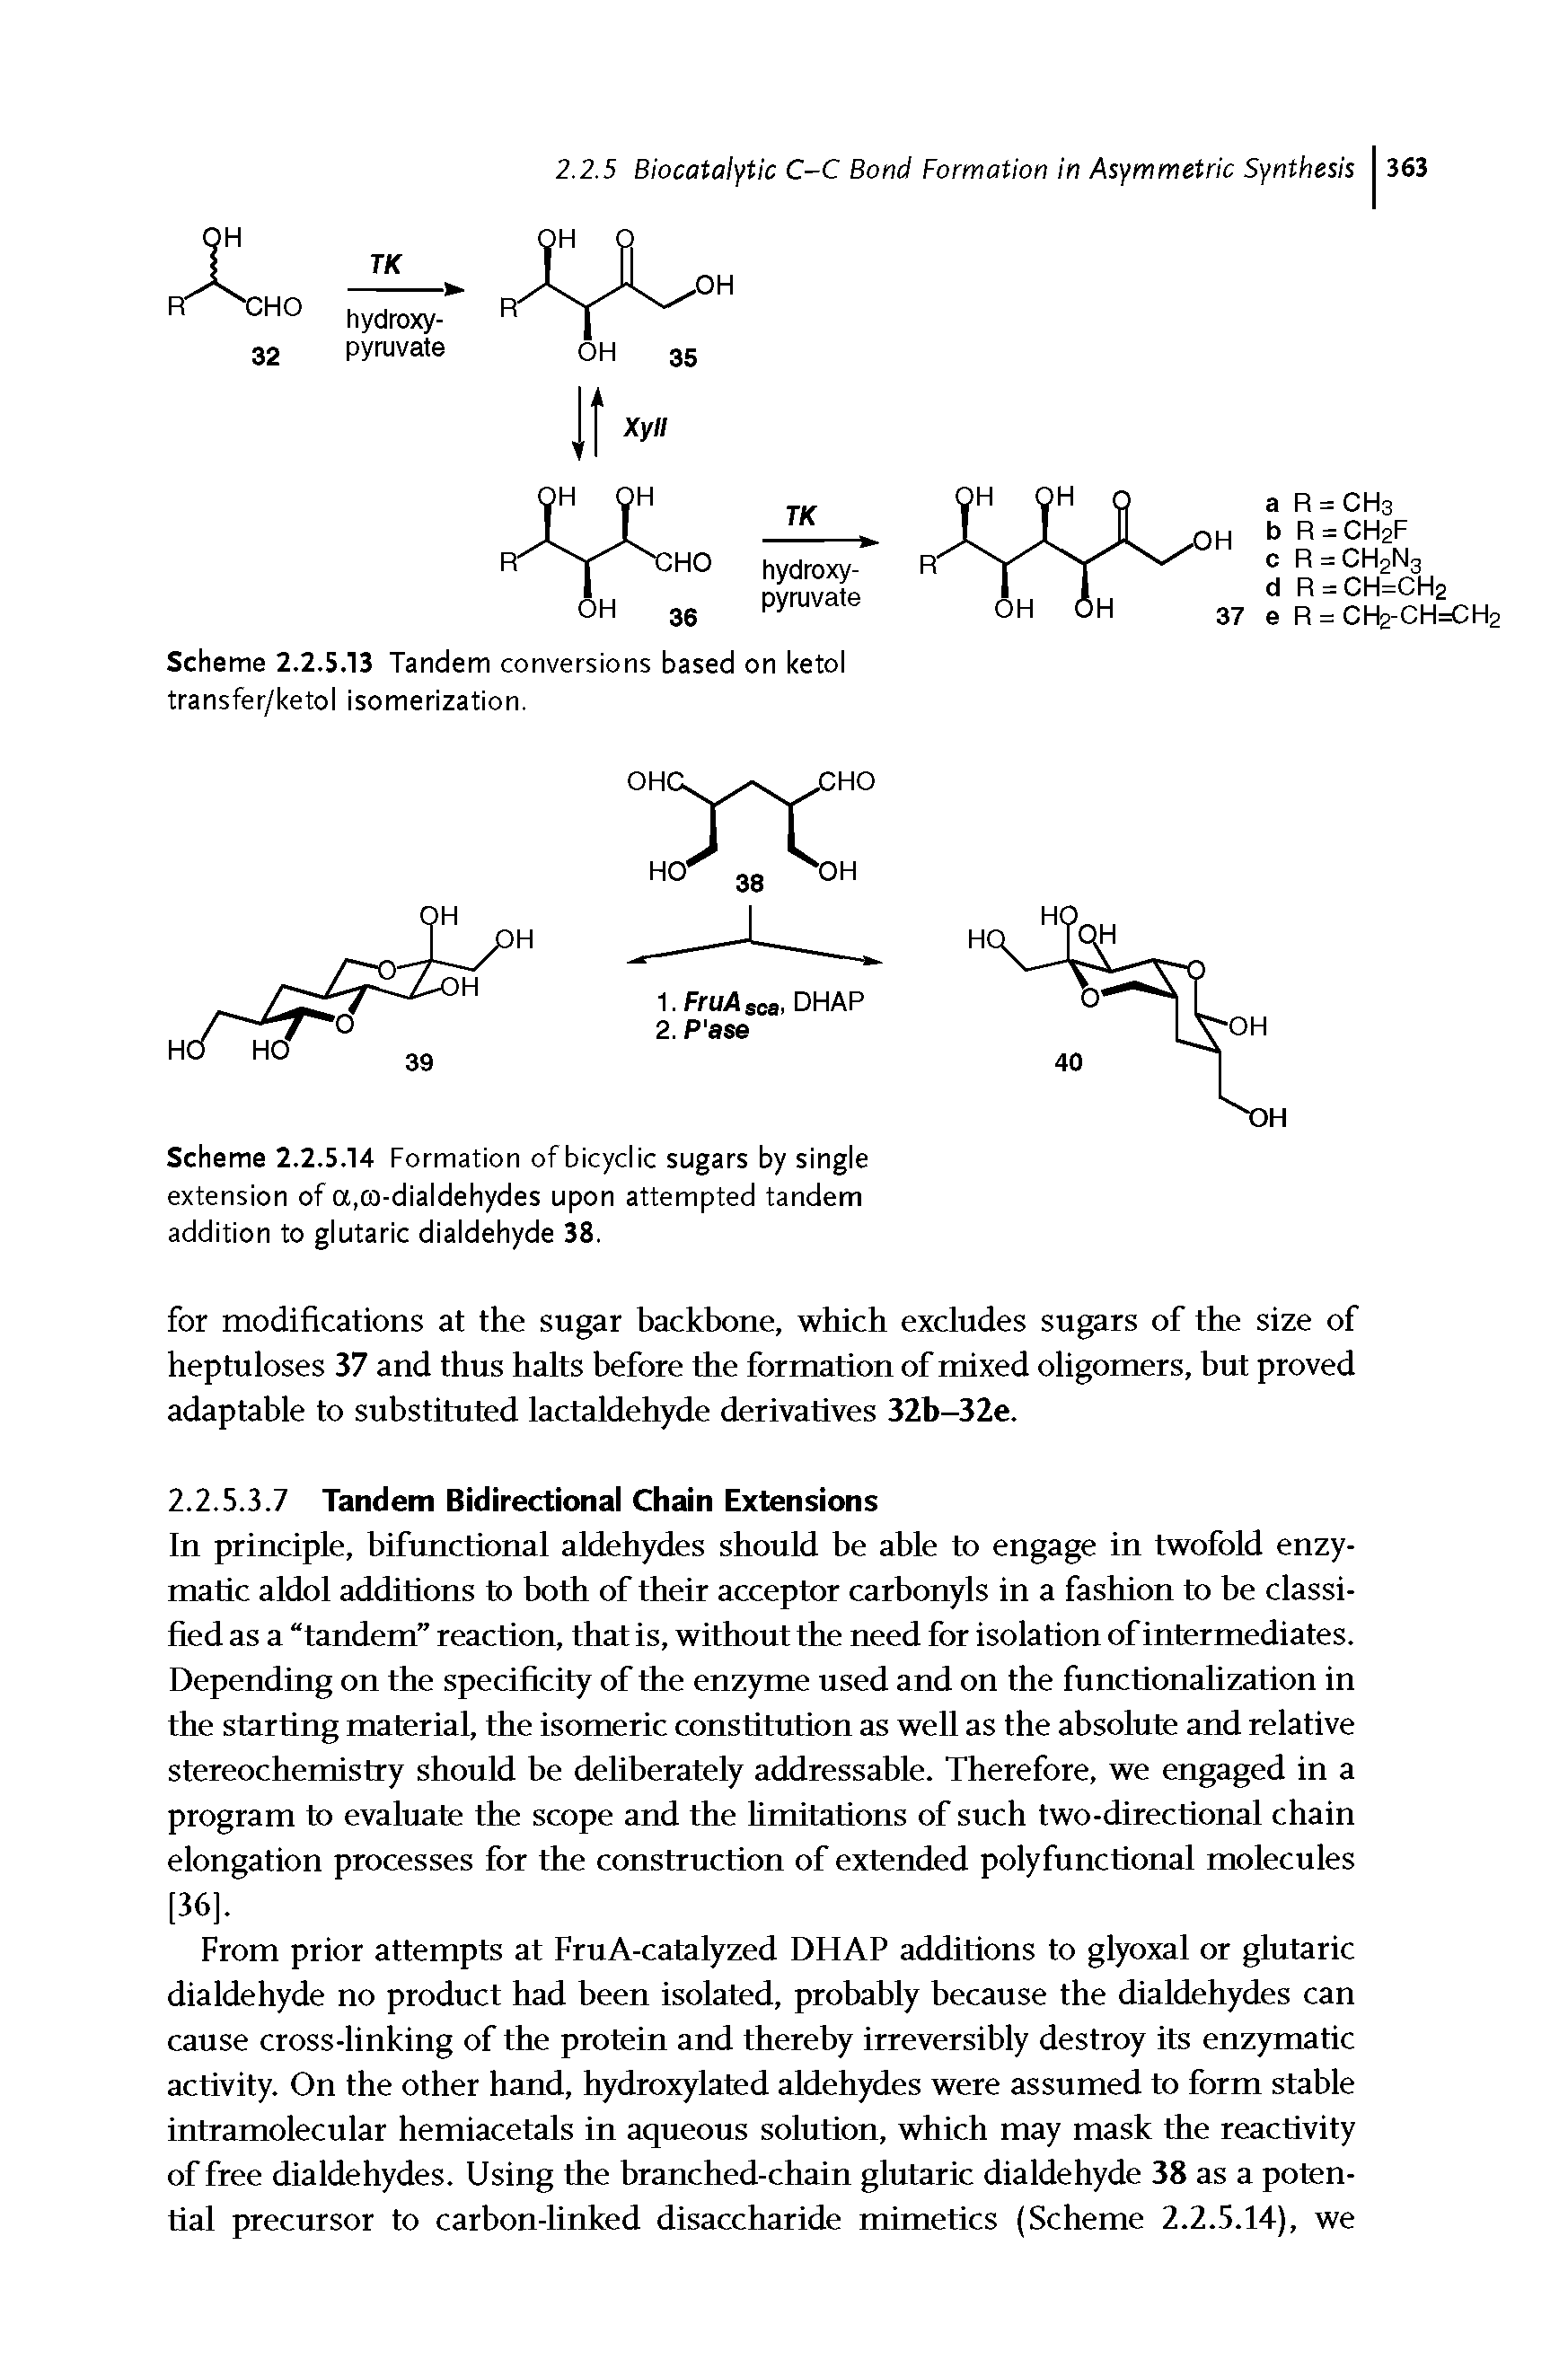 Scheme 2.2.5.14 Formation of bicyclic sugars by single extension of a,co-dialdehydes upon attempted tandem addition to glutaric dialdehyde 38.